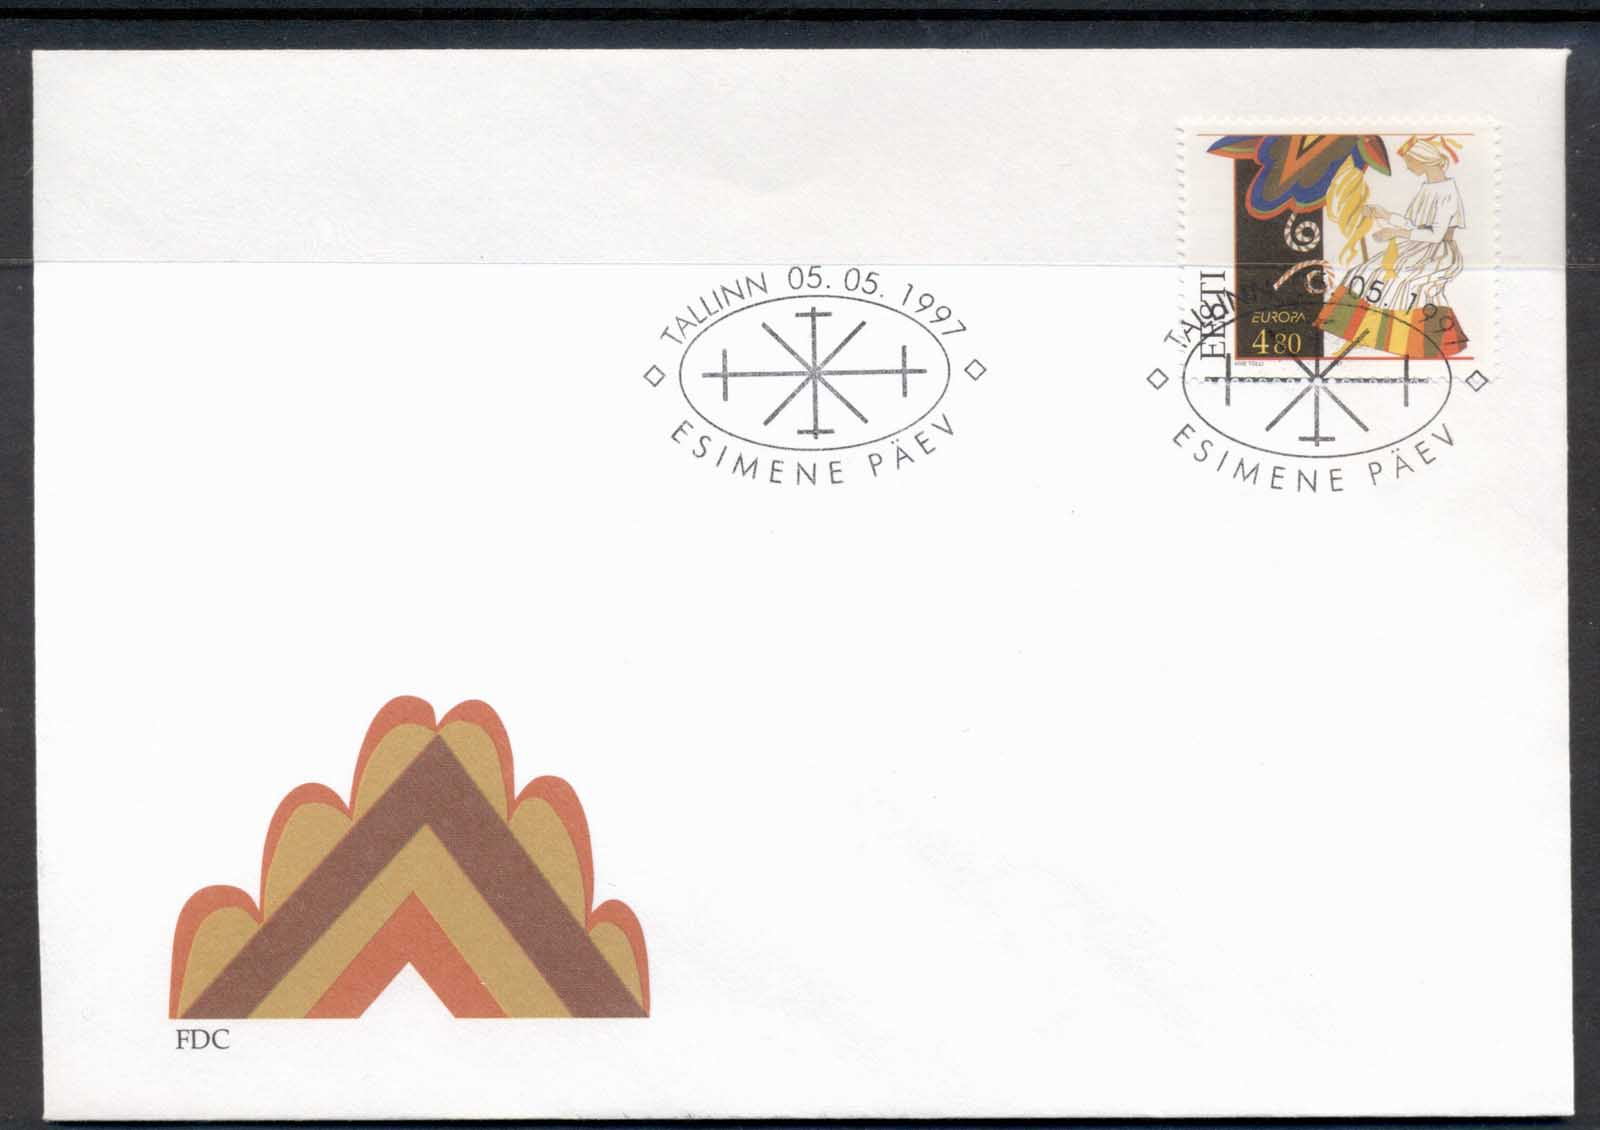 Estonia 1997 Europa Myths & legends FDC